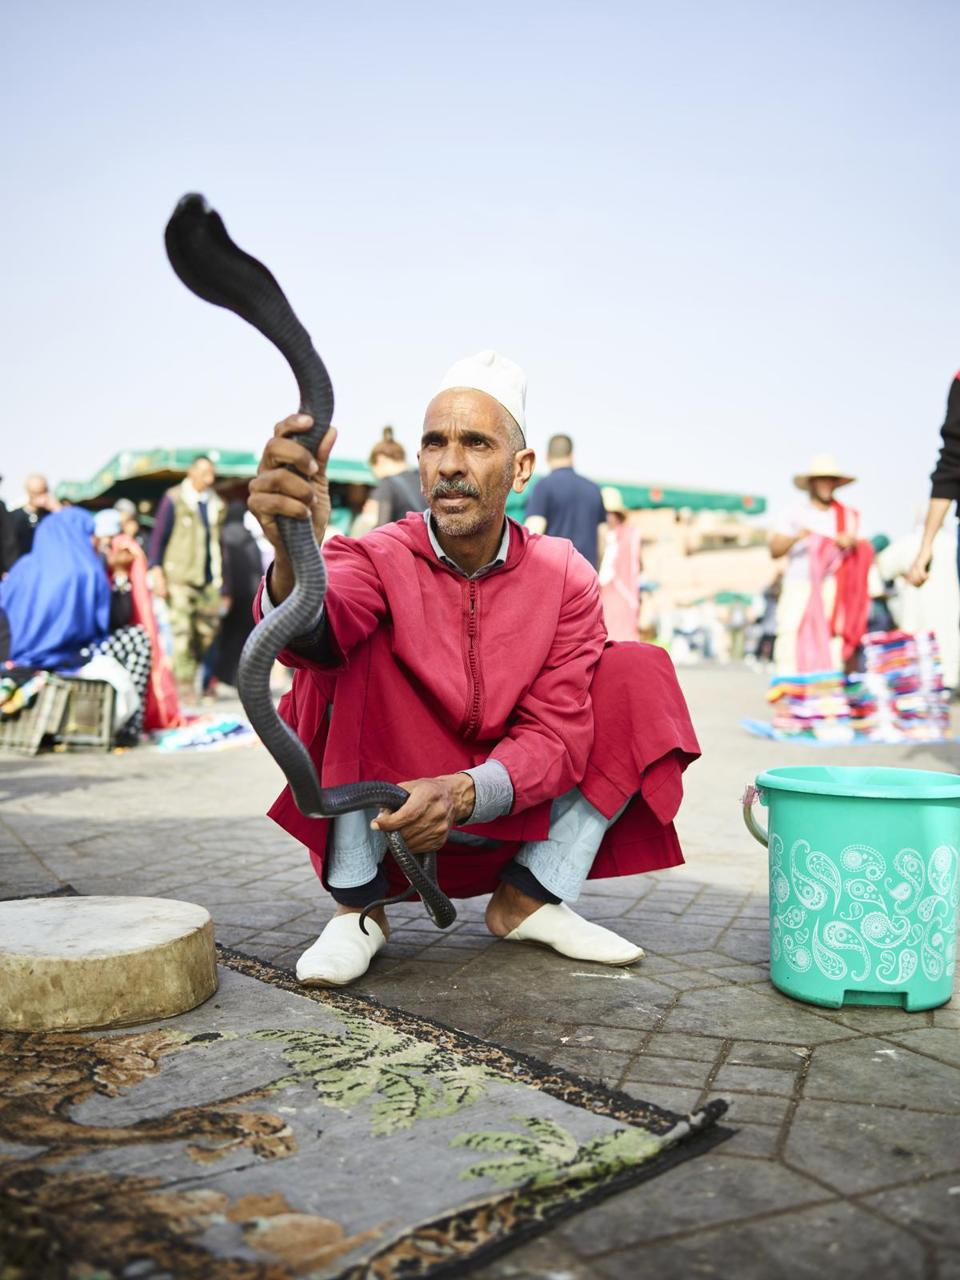 A snake charmer in Marrakech's Jemaa el Fna square.